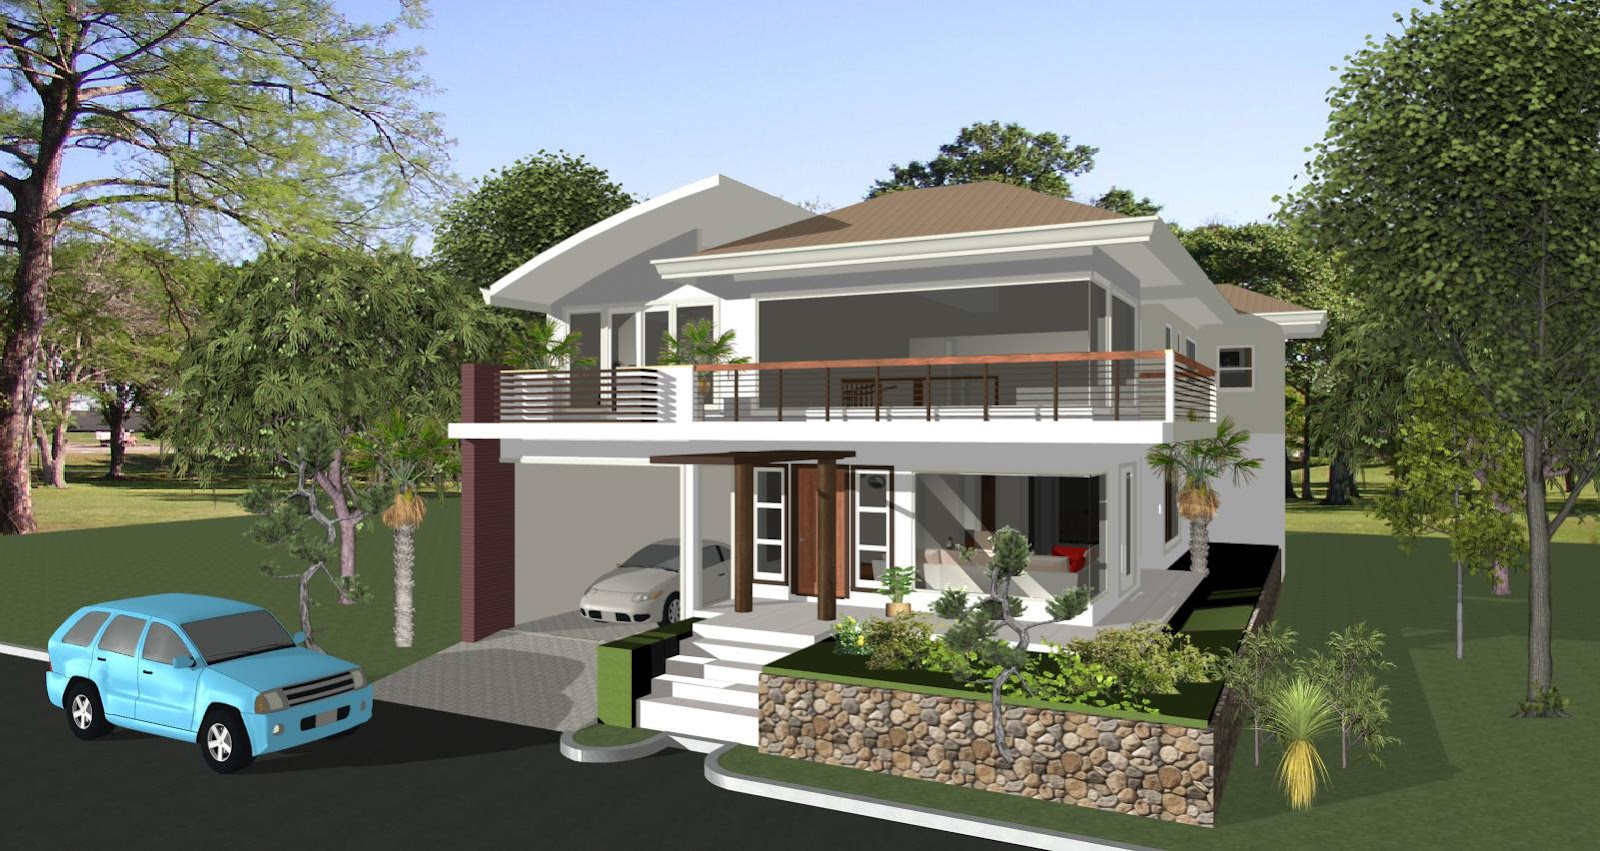 House designs philippines architect bill house plans for Dream home plans